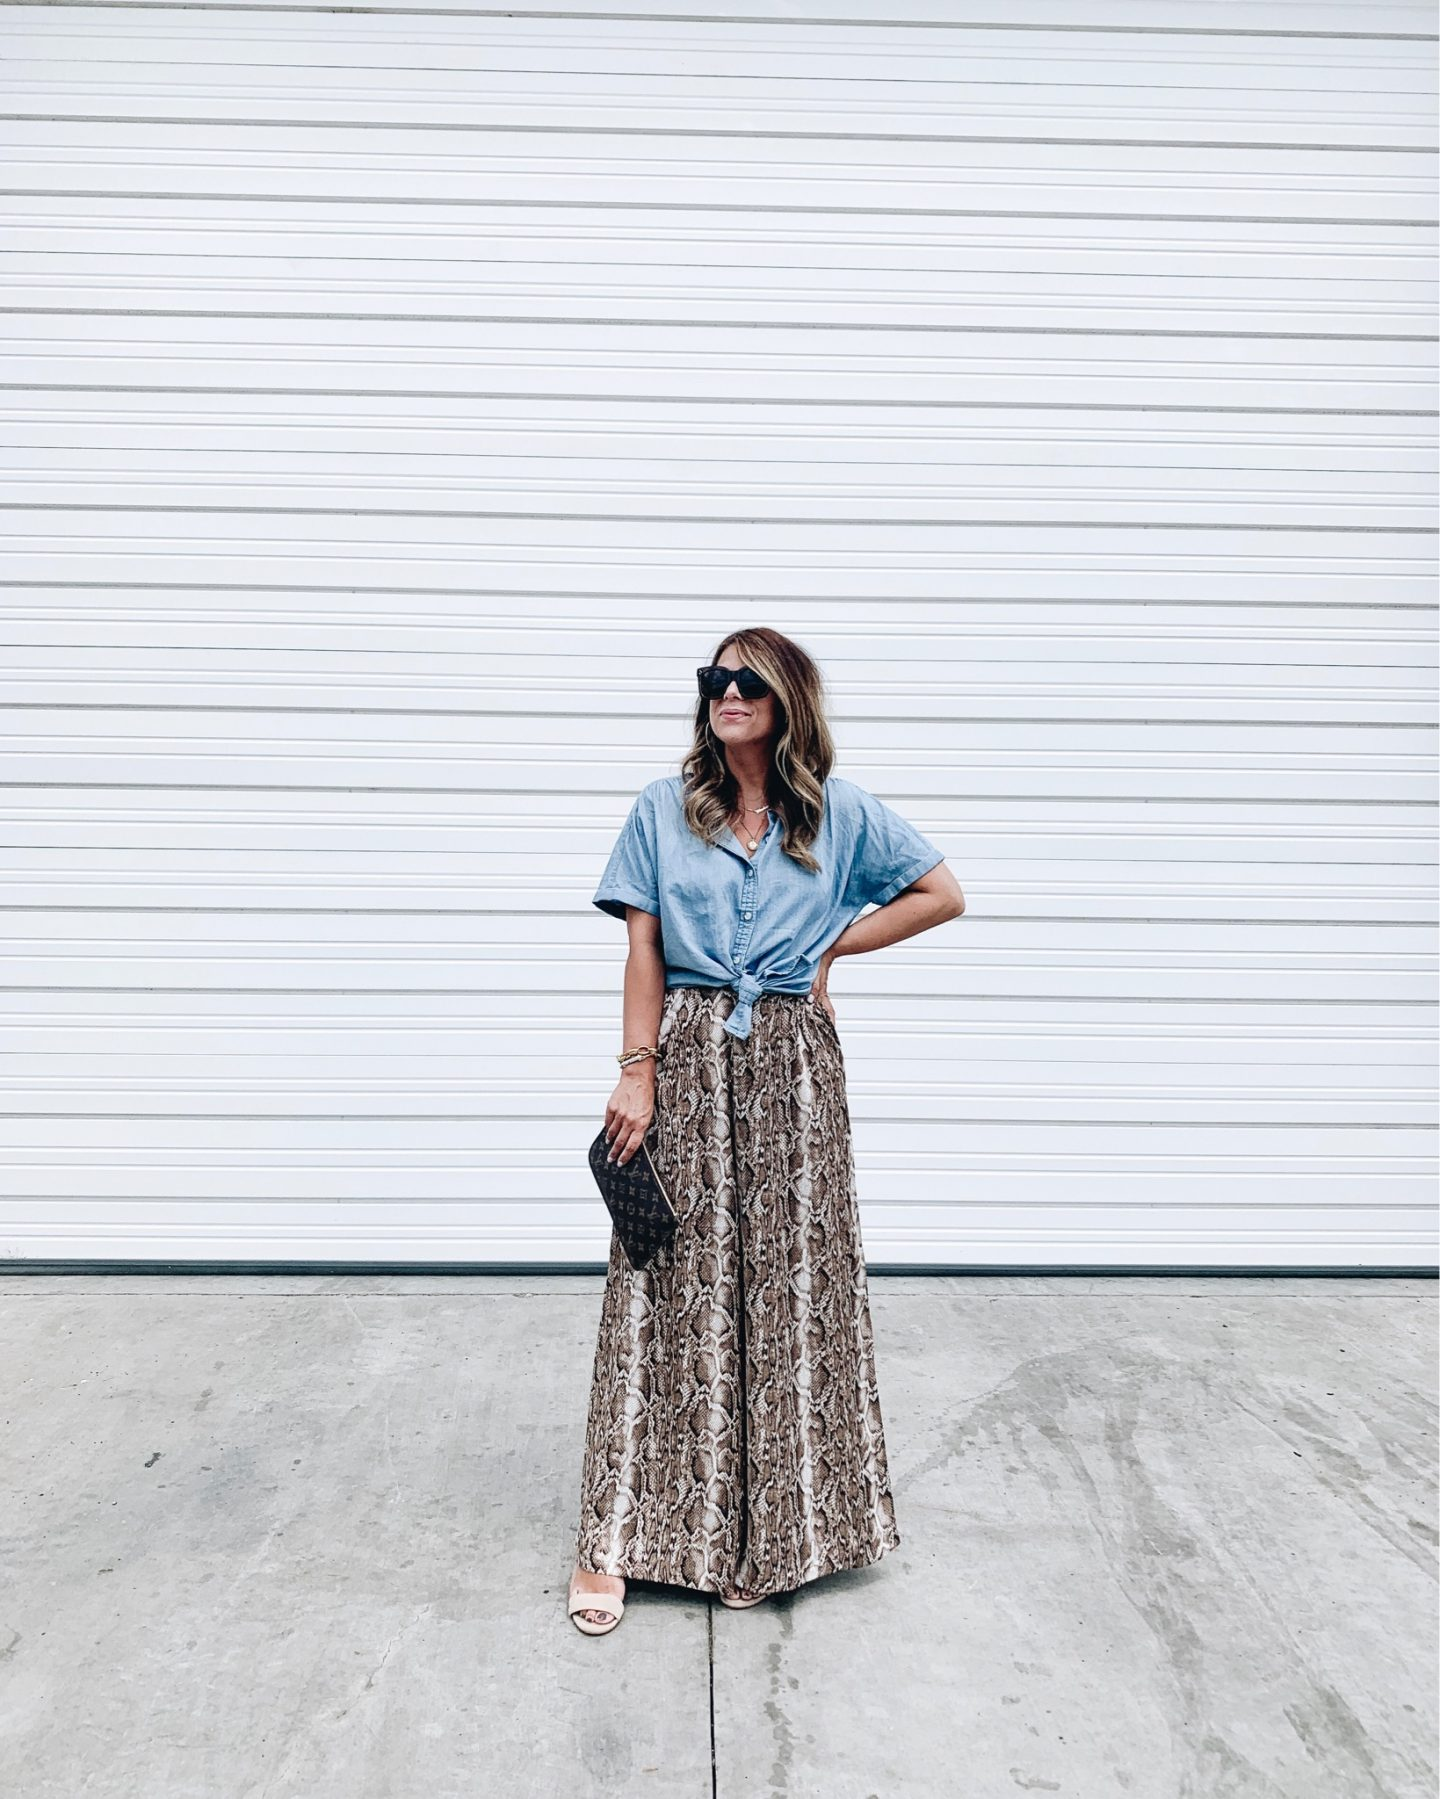 Chambray top, Wide leg pants, Snakeskin